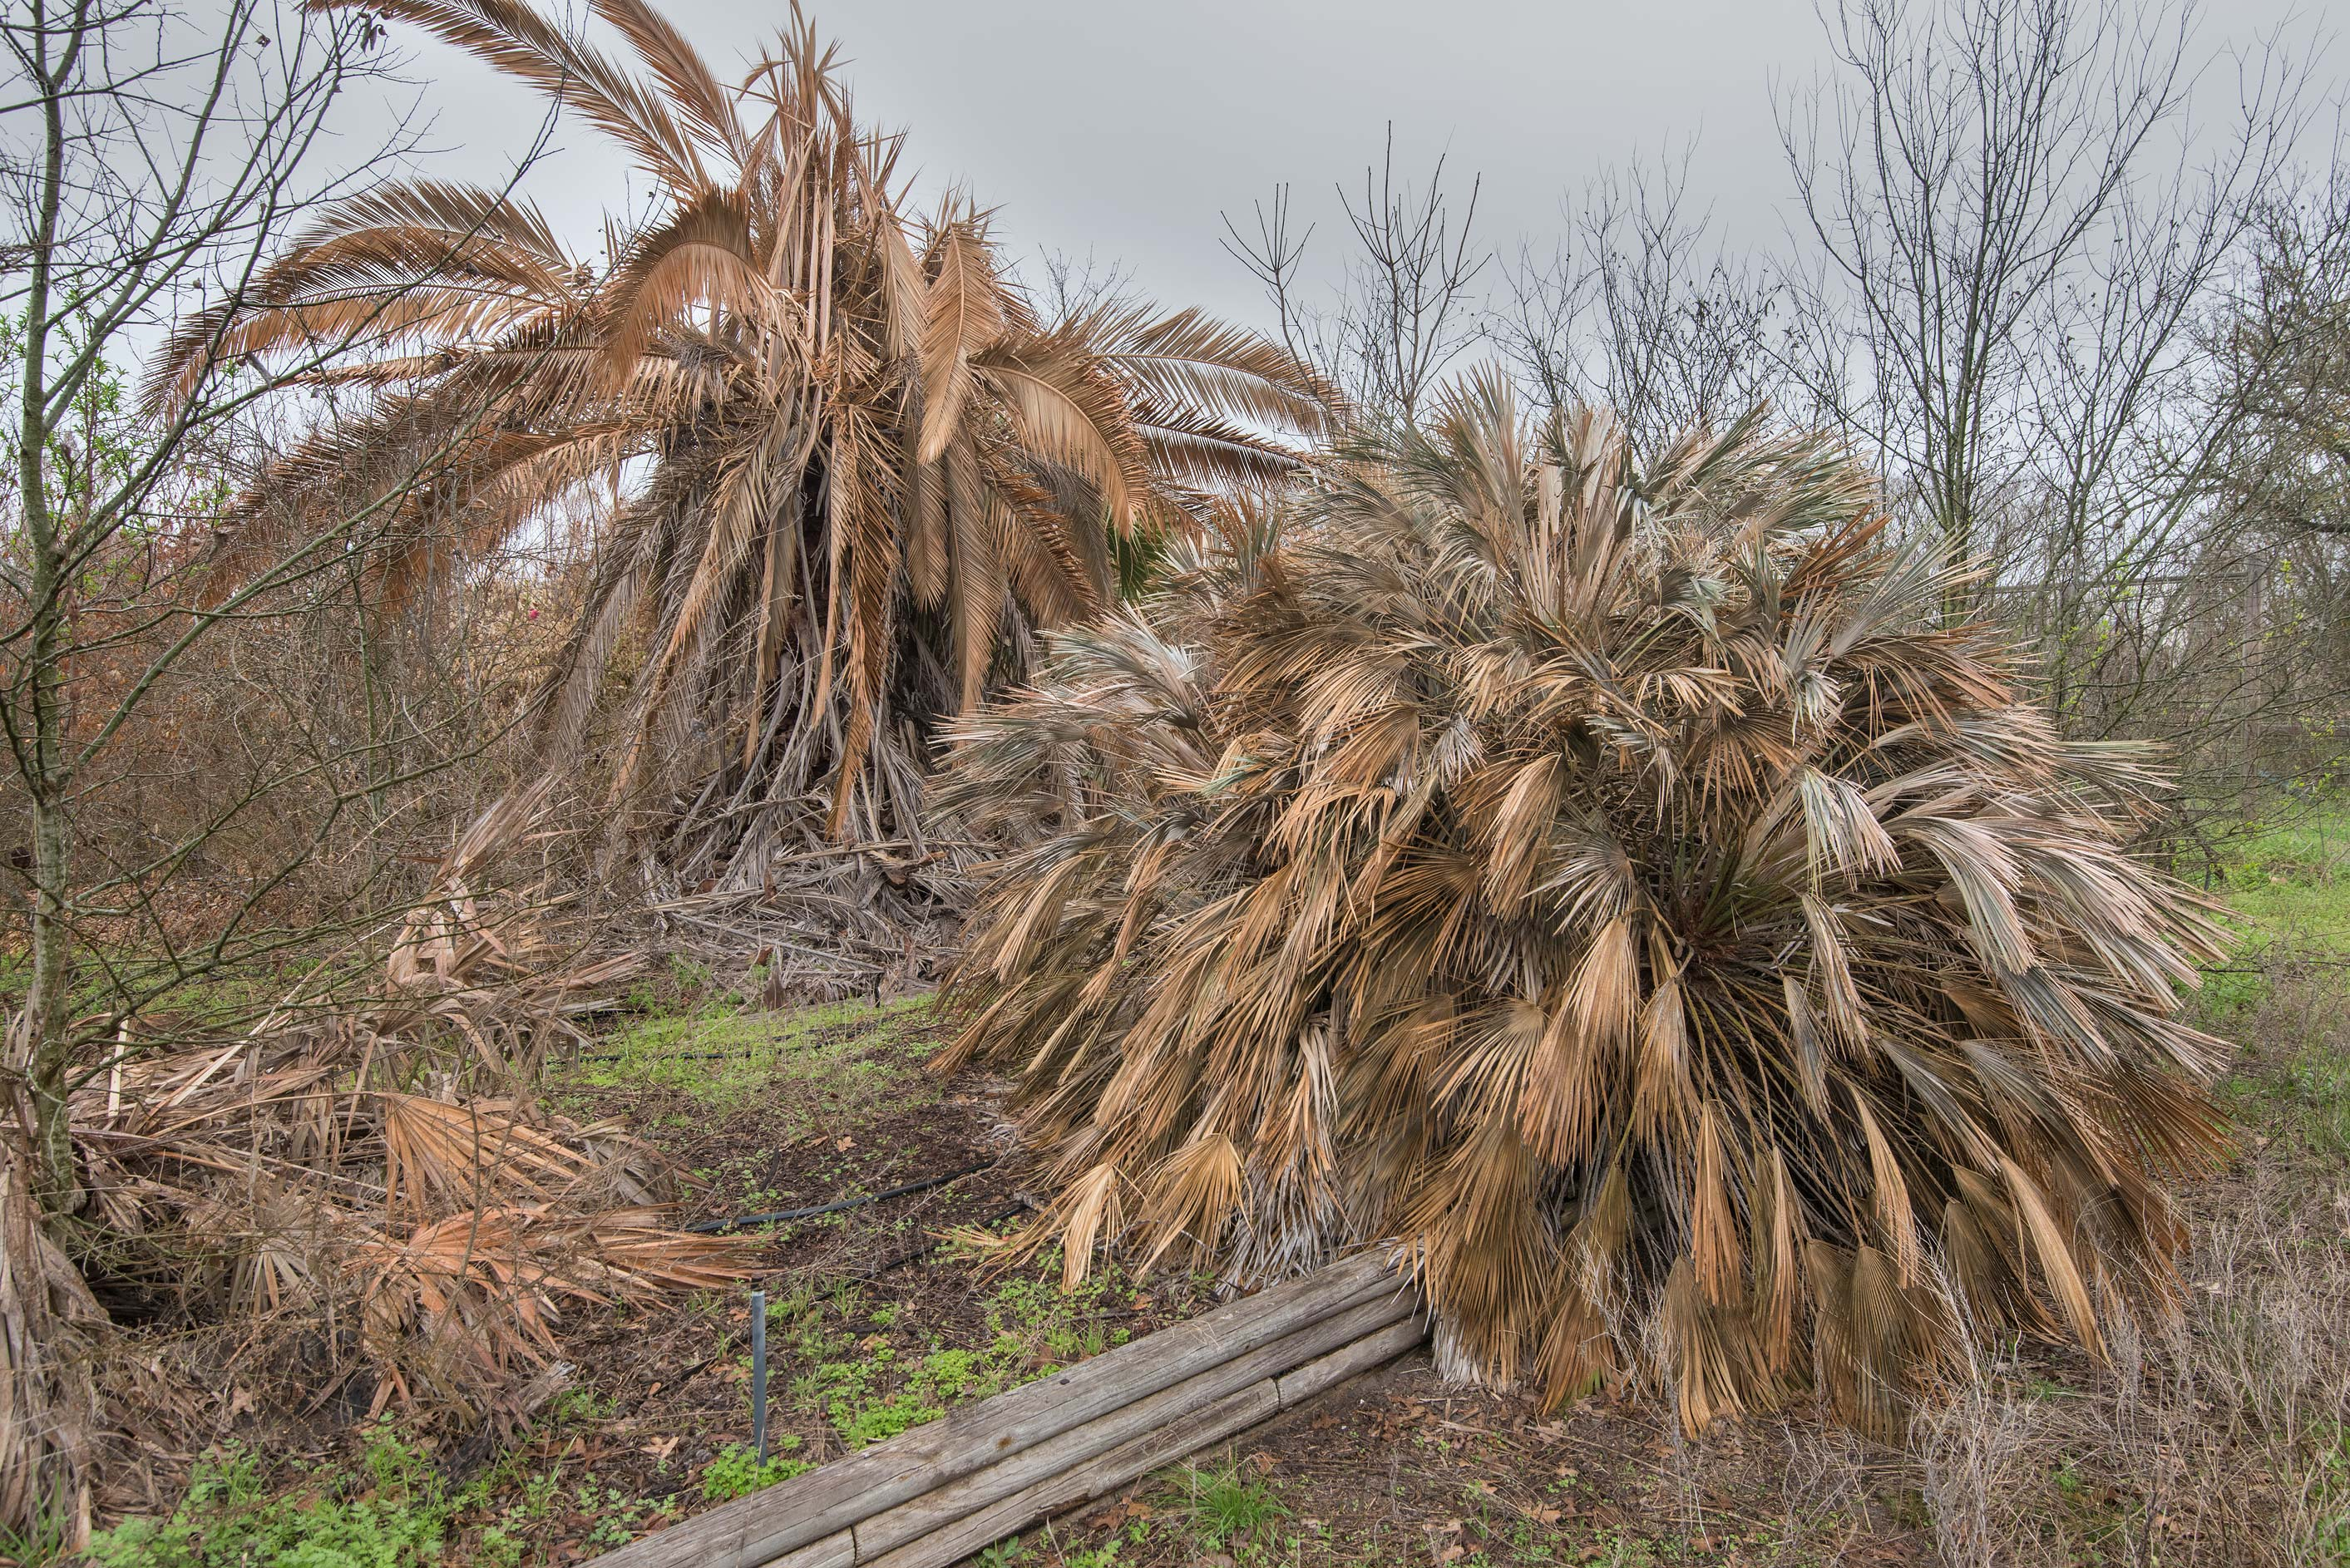 Dry palms in TAMU Horticultural Gardens in Texas...M University. College Station, Texas